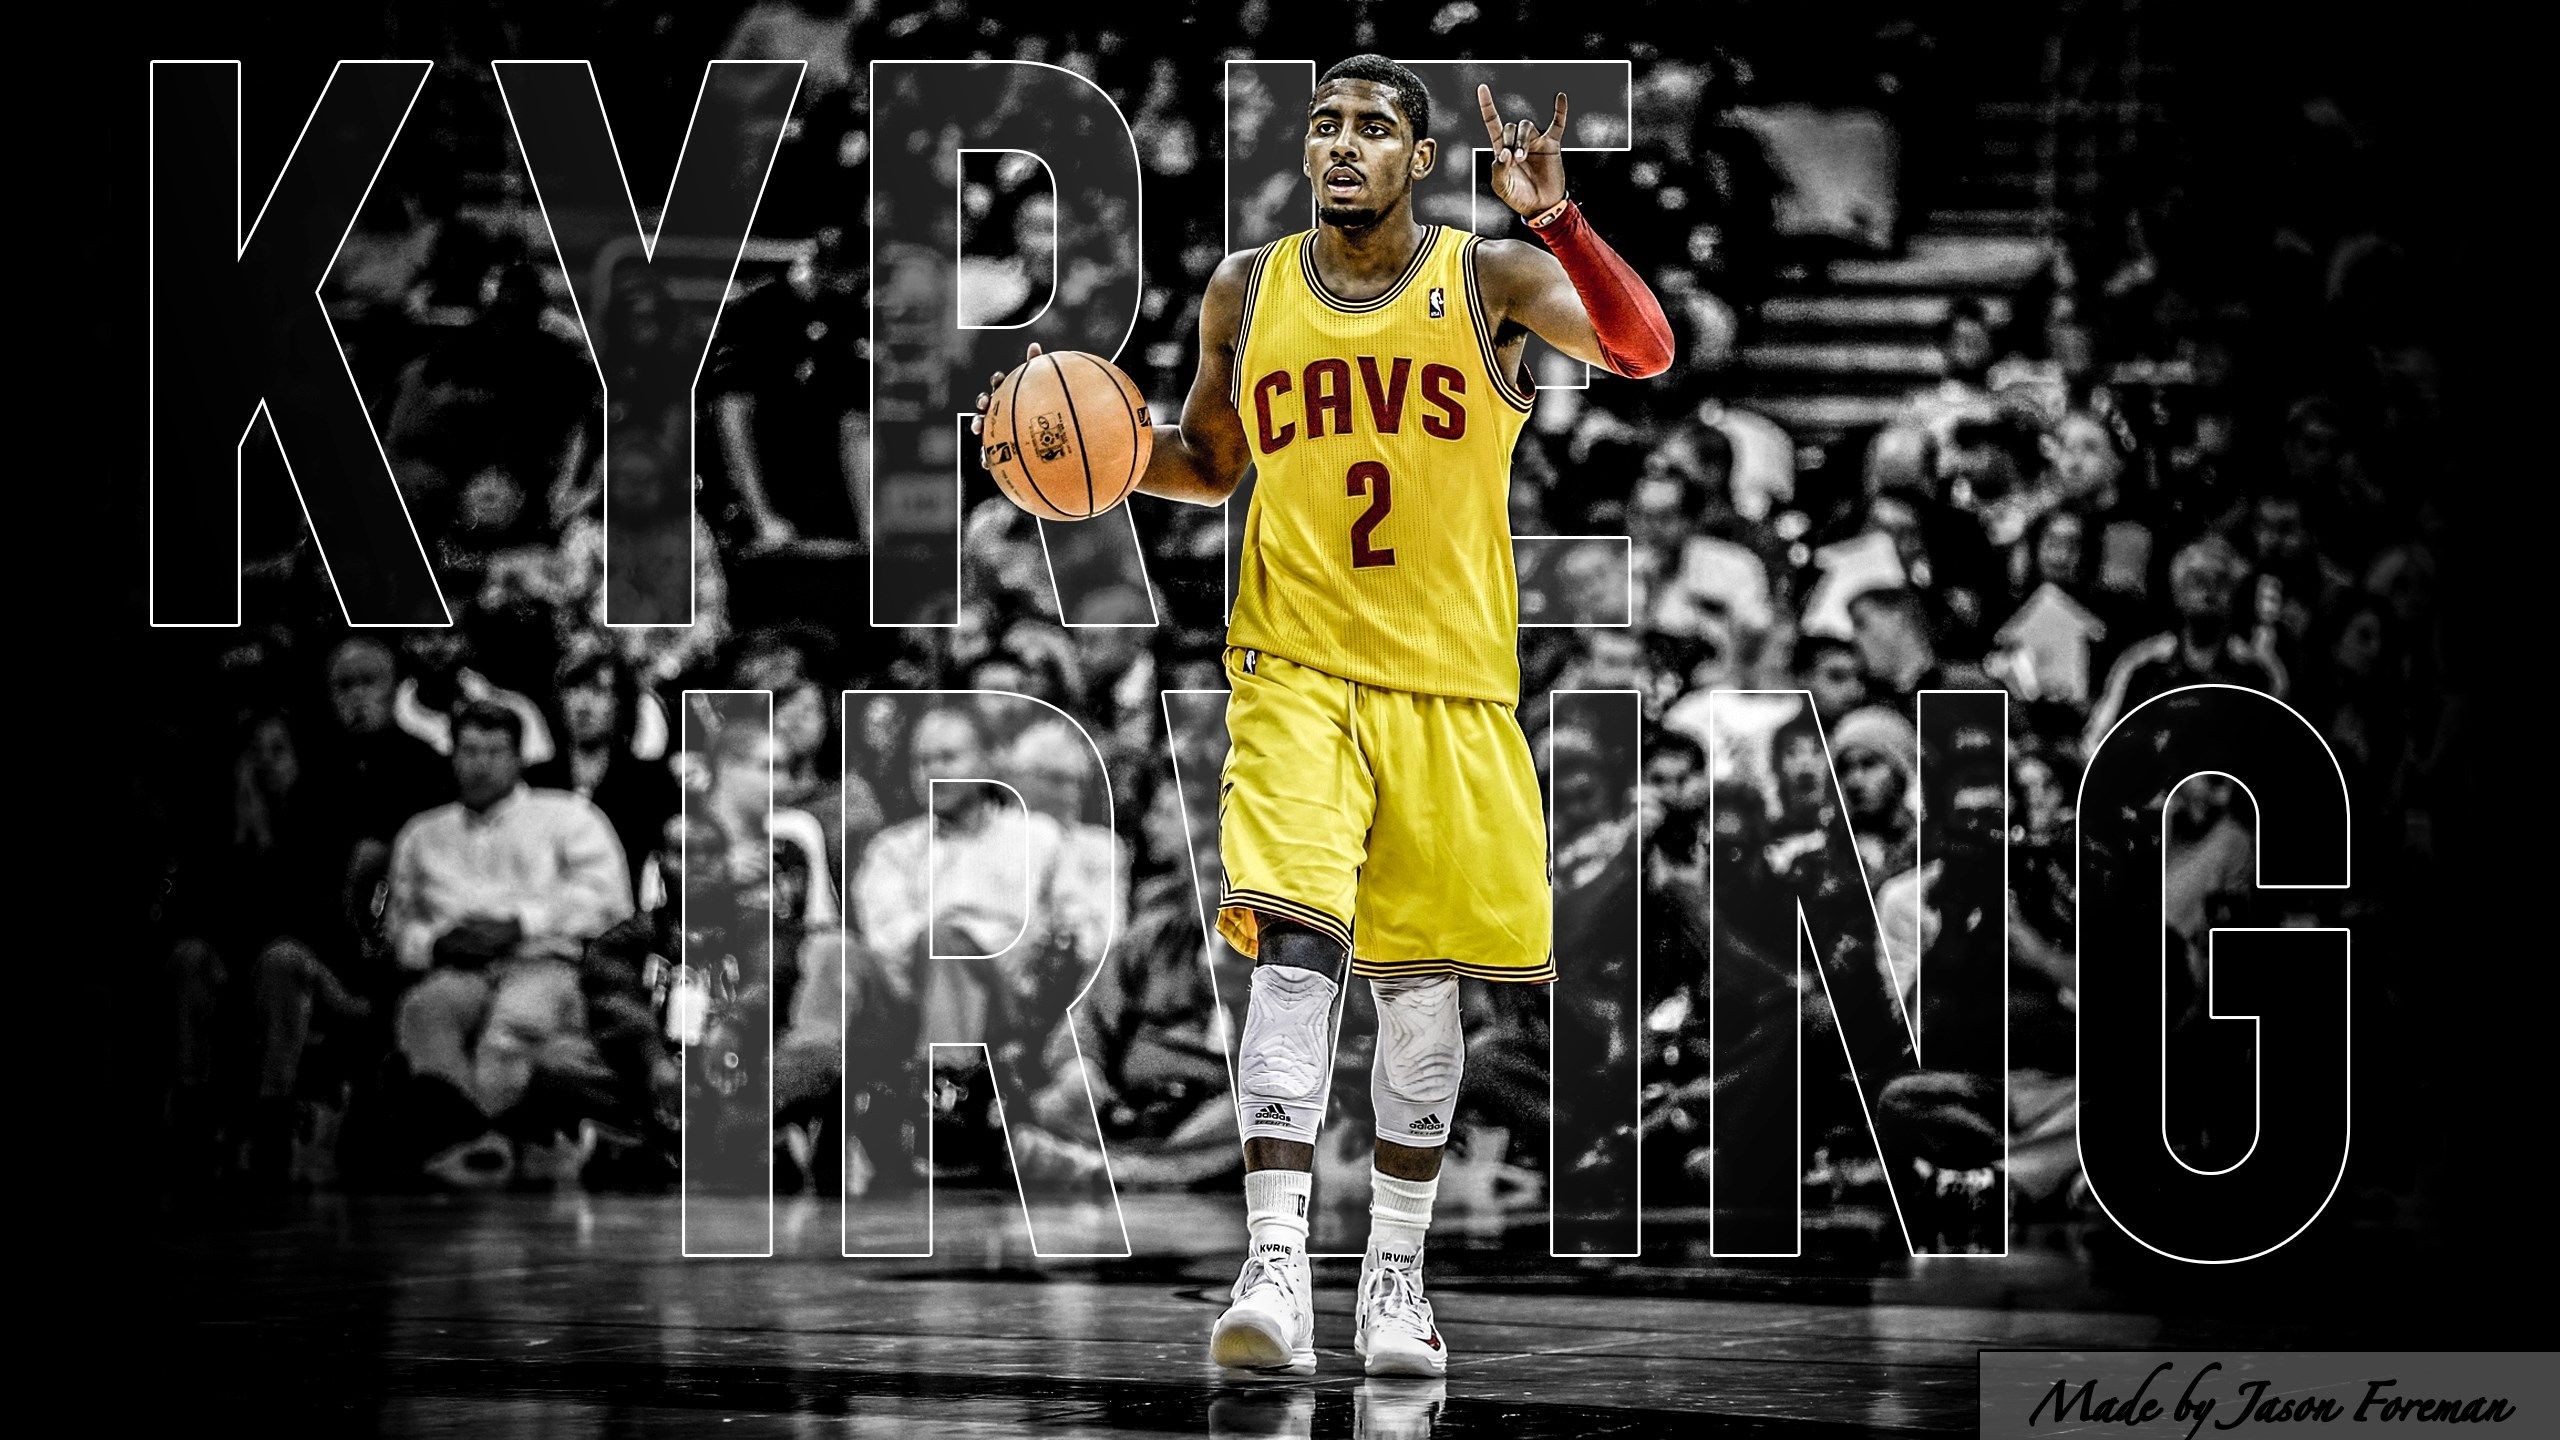 kyrie irving wallpaper full hd Irving wallpapers, Kyrie